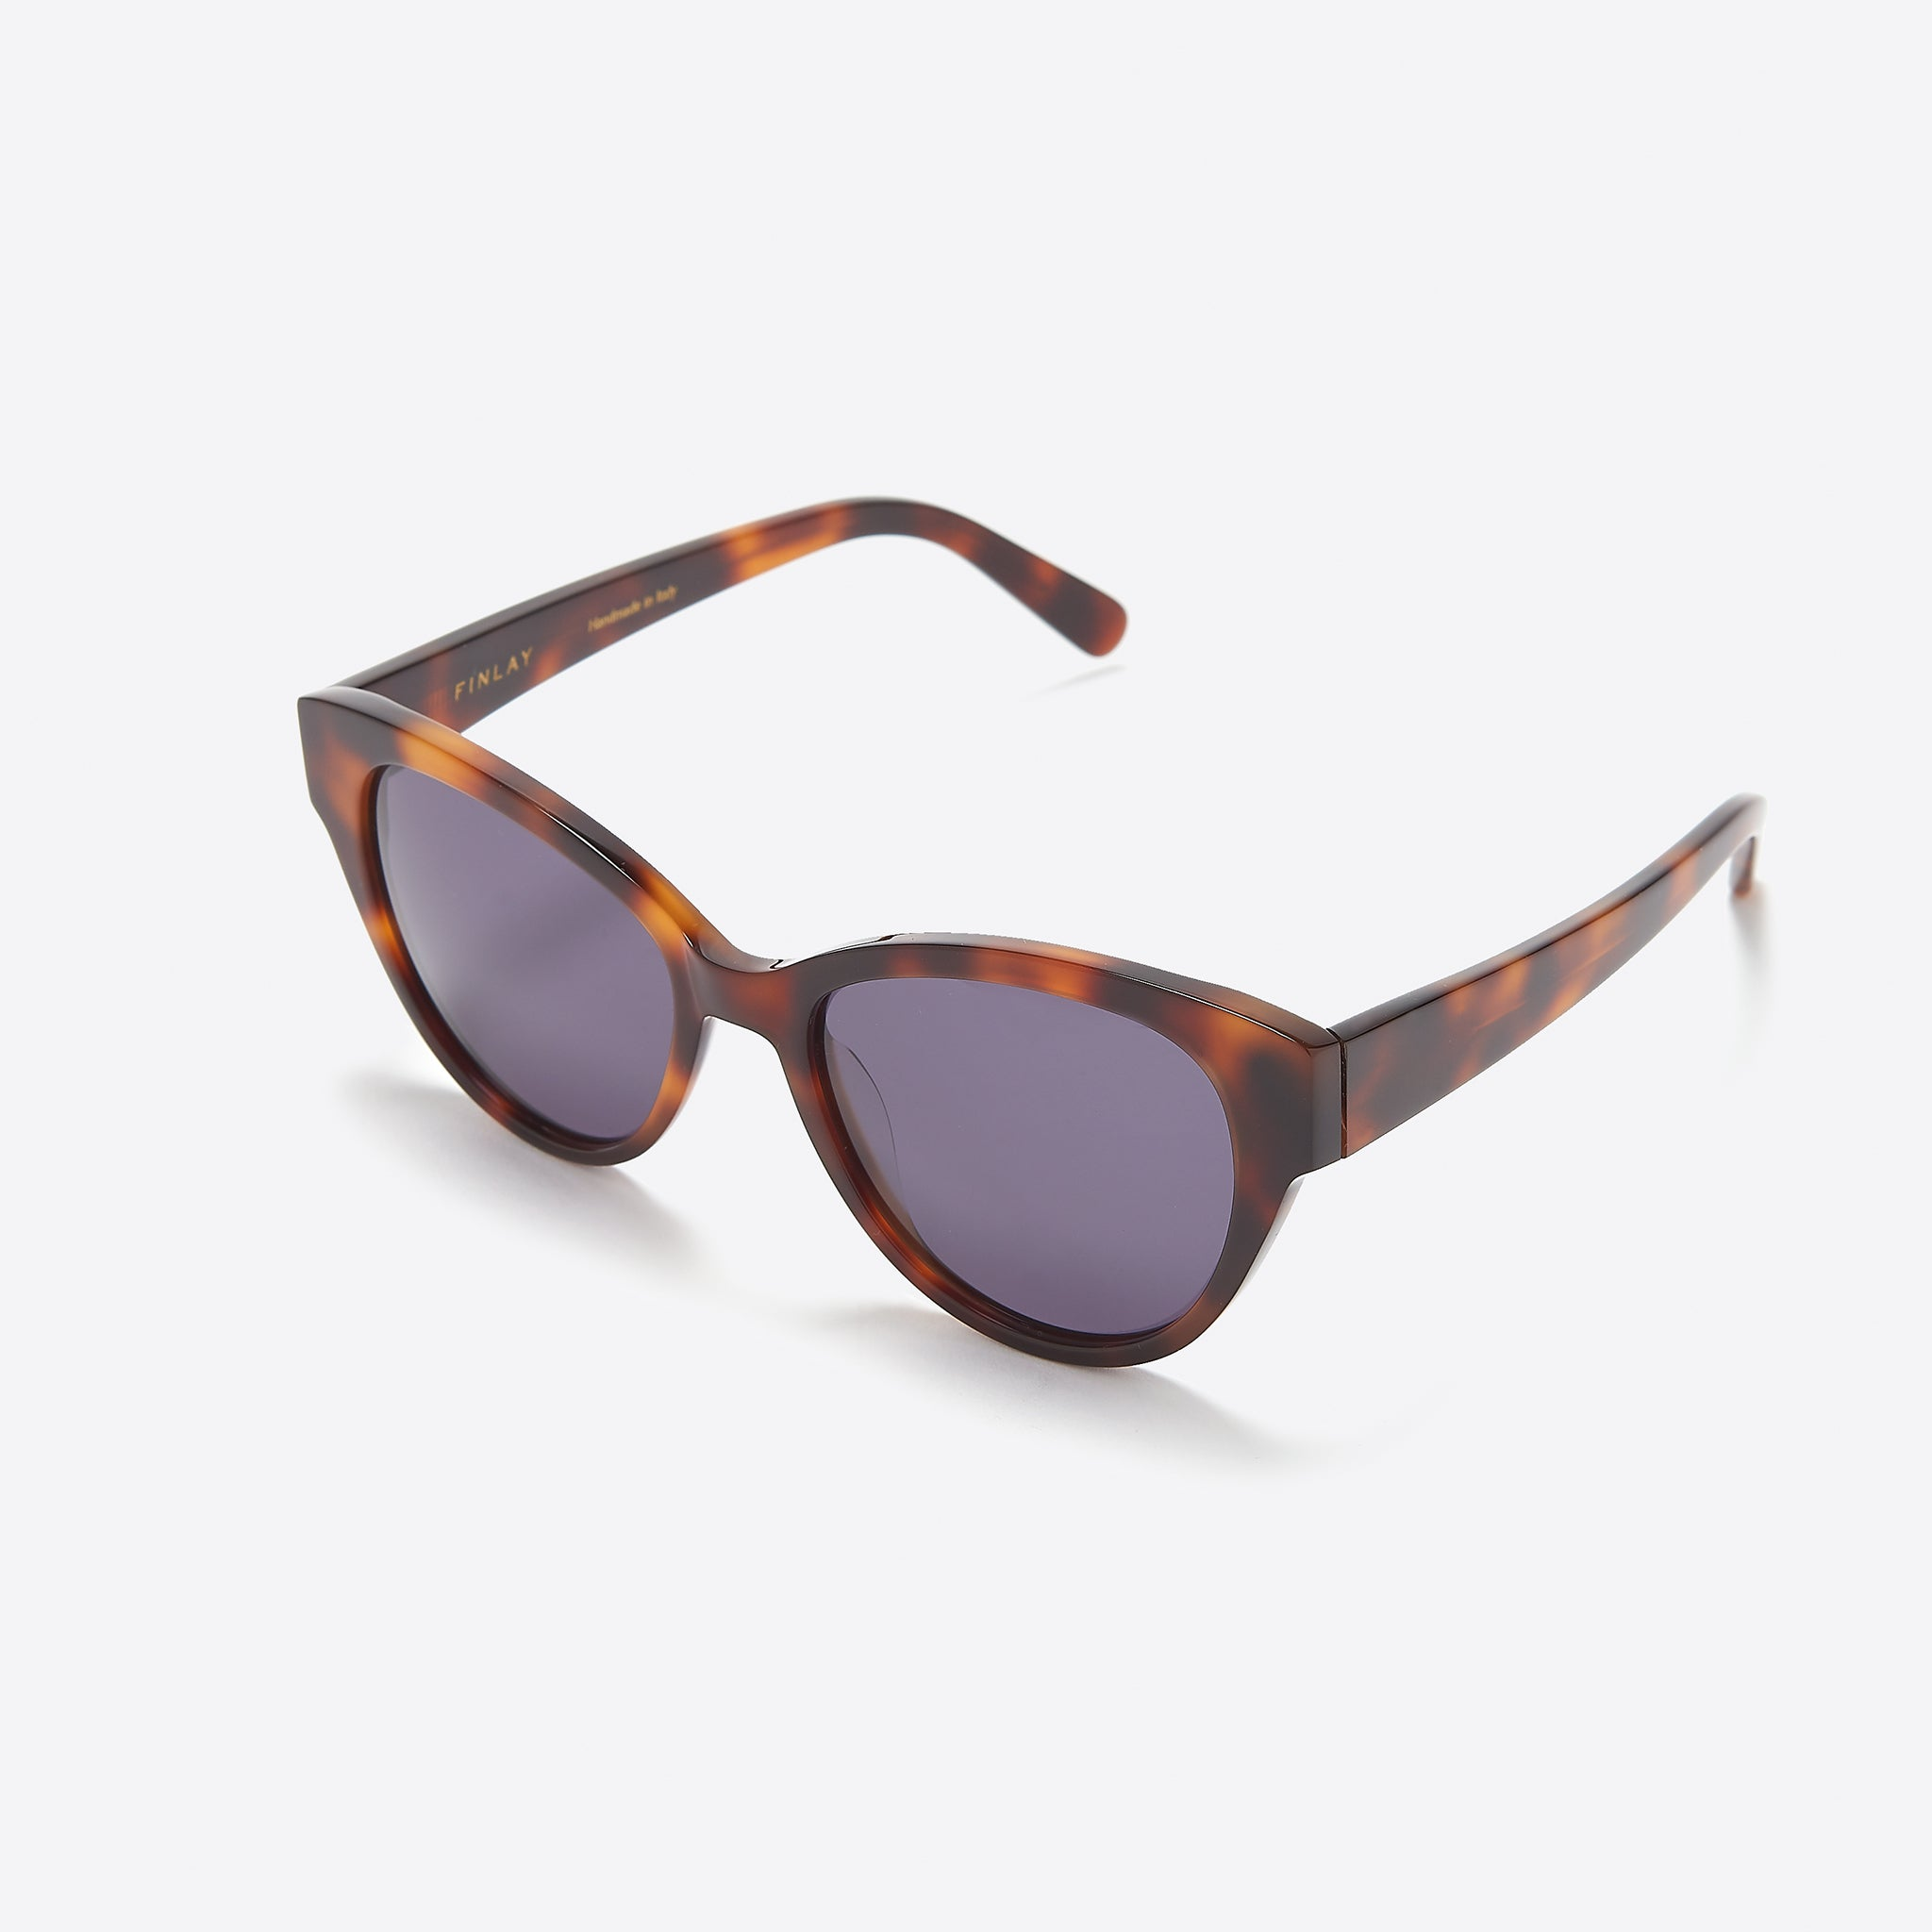 FINLAY London Henrietta Sunglasses in Dark Tortoise